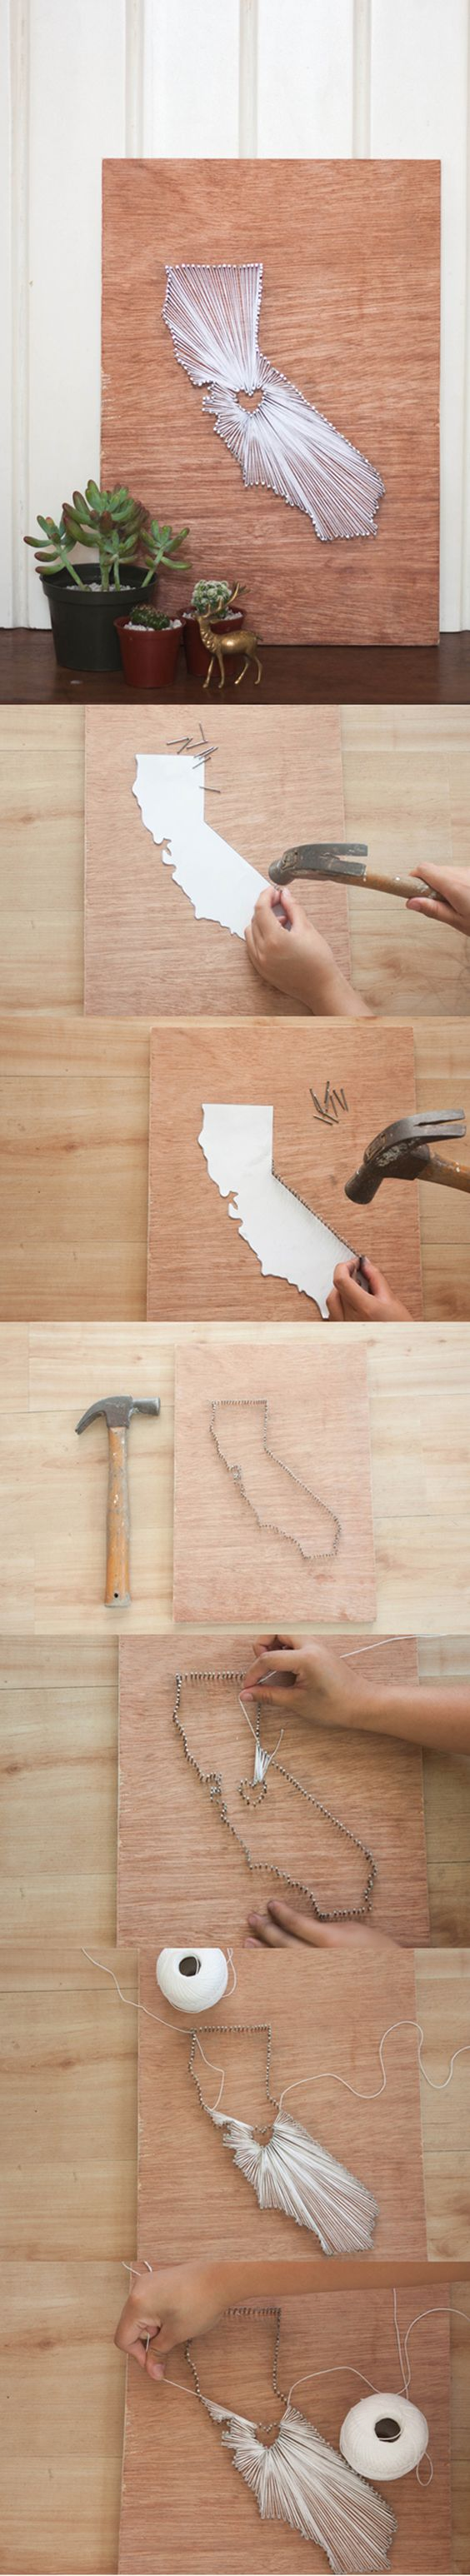 Cool DIY State String Art | Simple and Inexpensive DIY Home Decor Signs and Projects by DIY Ready at  http://diyready.com/diy-home-decor-under-an-hour/